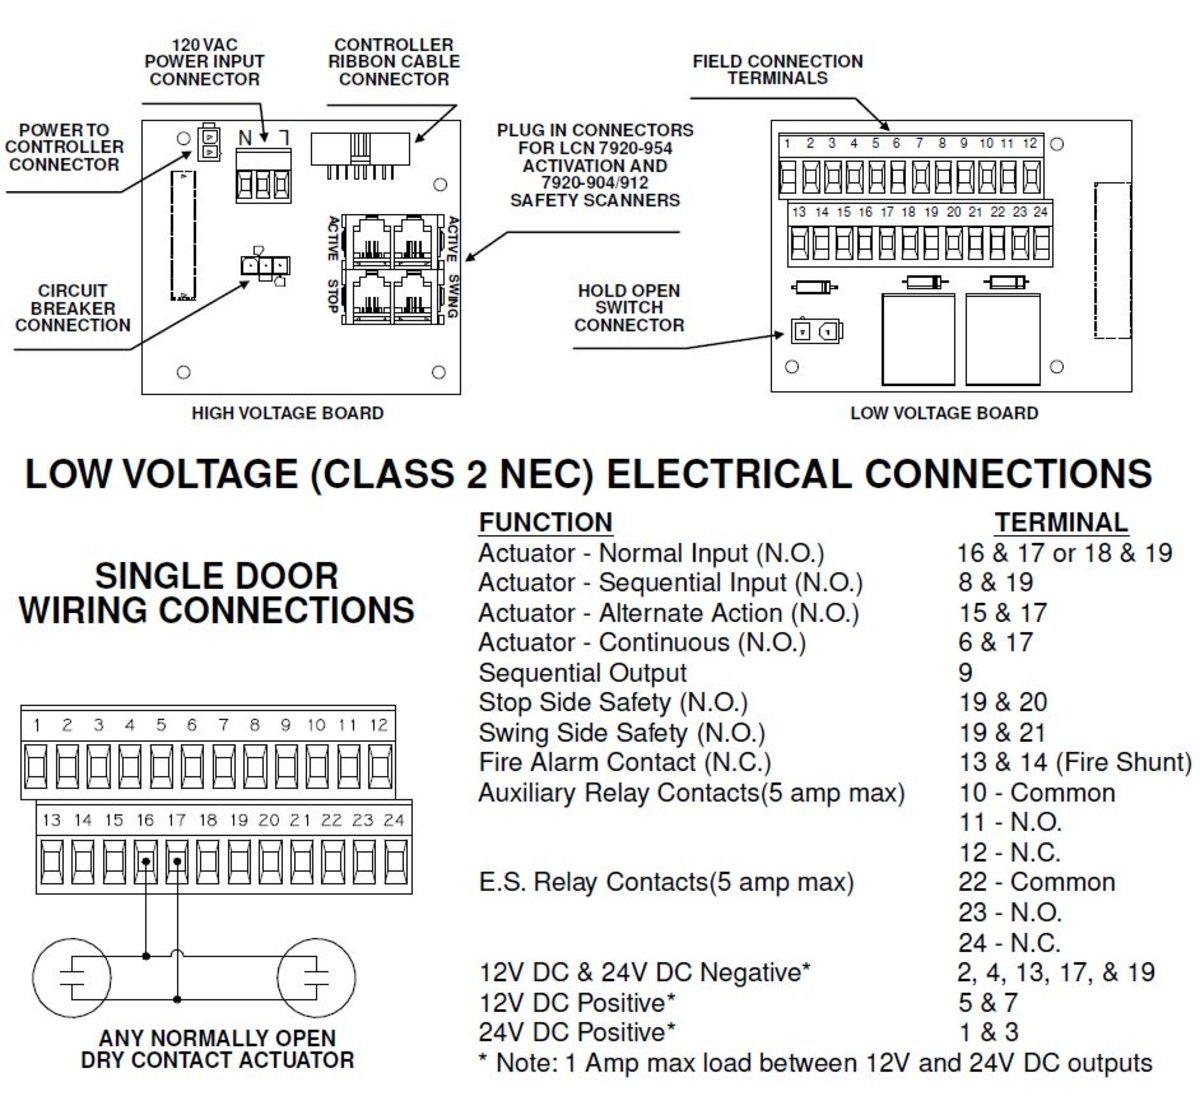 How To Coordinate Automatic Doors With Locking Devices Dengarden Schematic Plug Wiring Diagram Dry